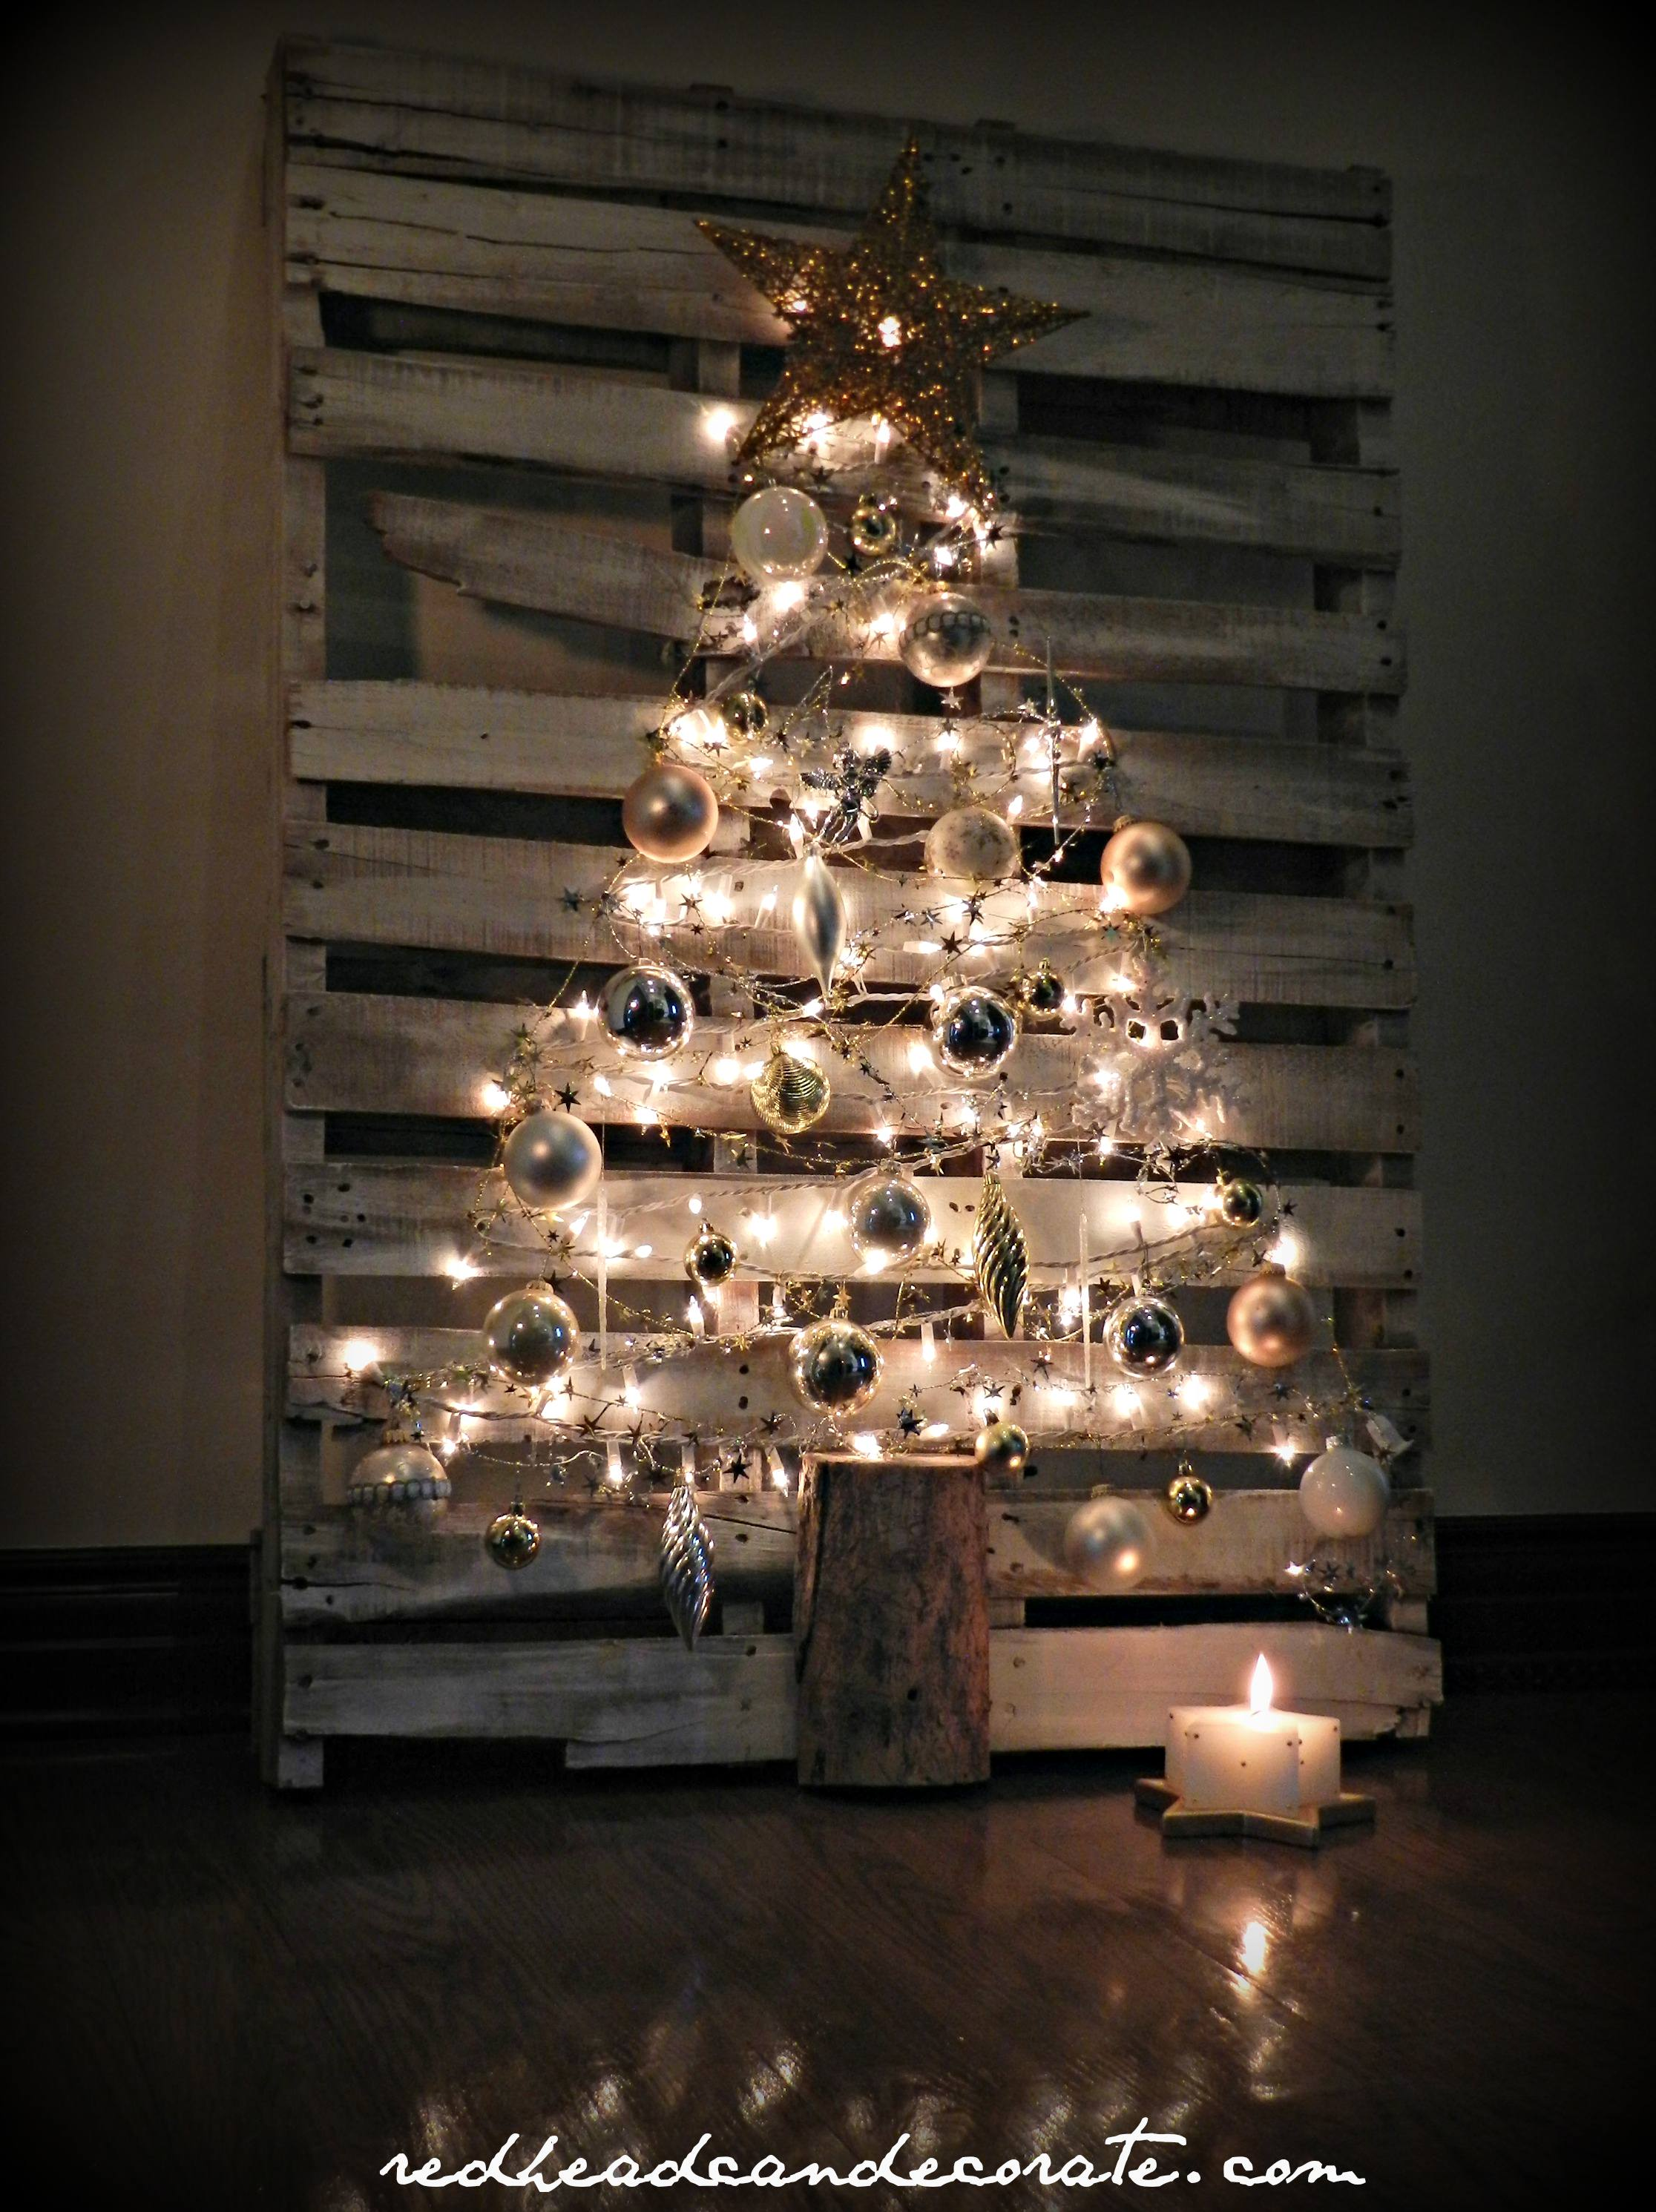 diy pallet christmas tree w easy steps and no wood removal - Wood Pallet Christmas Tree